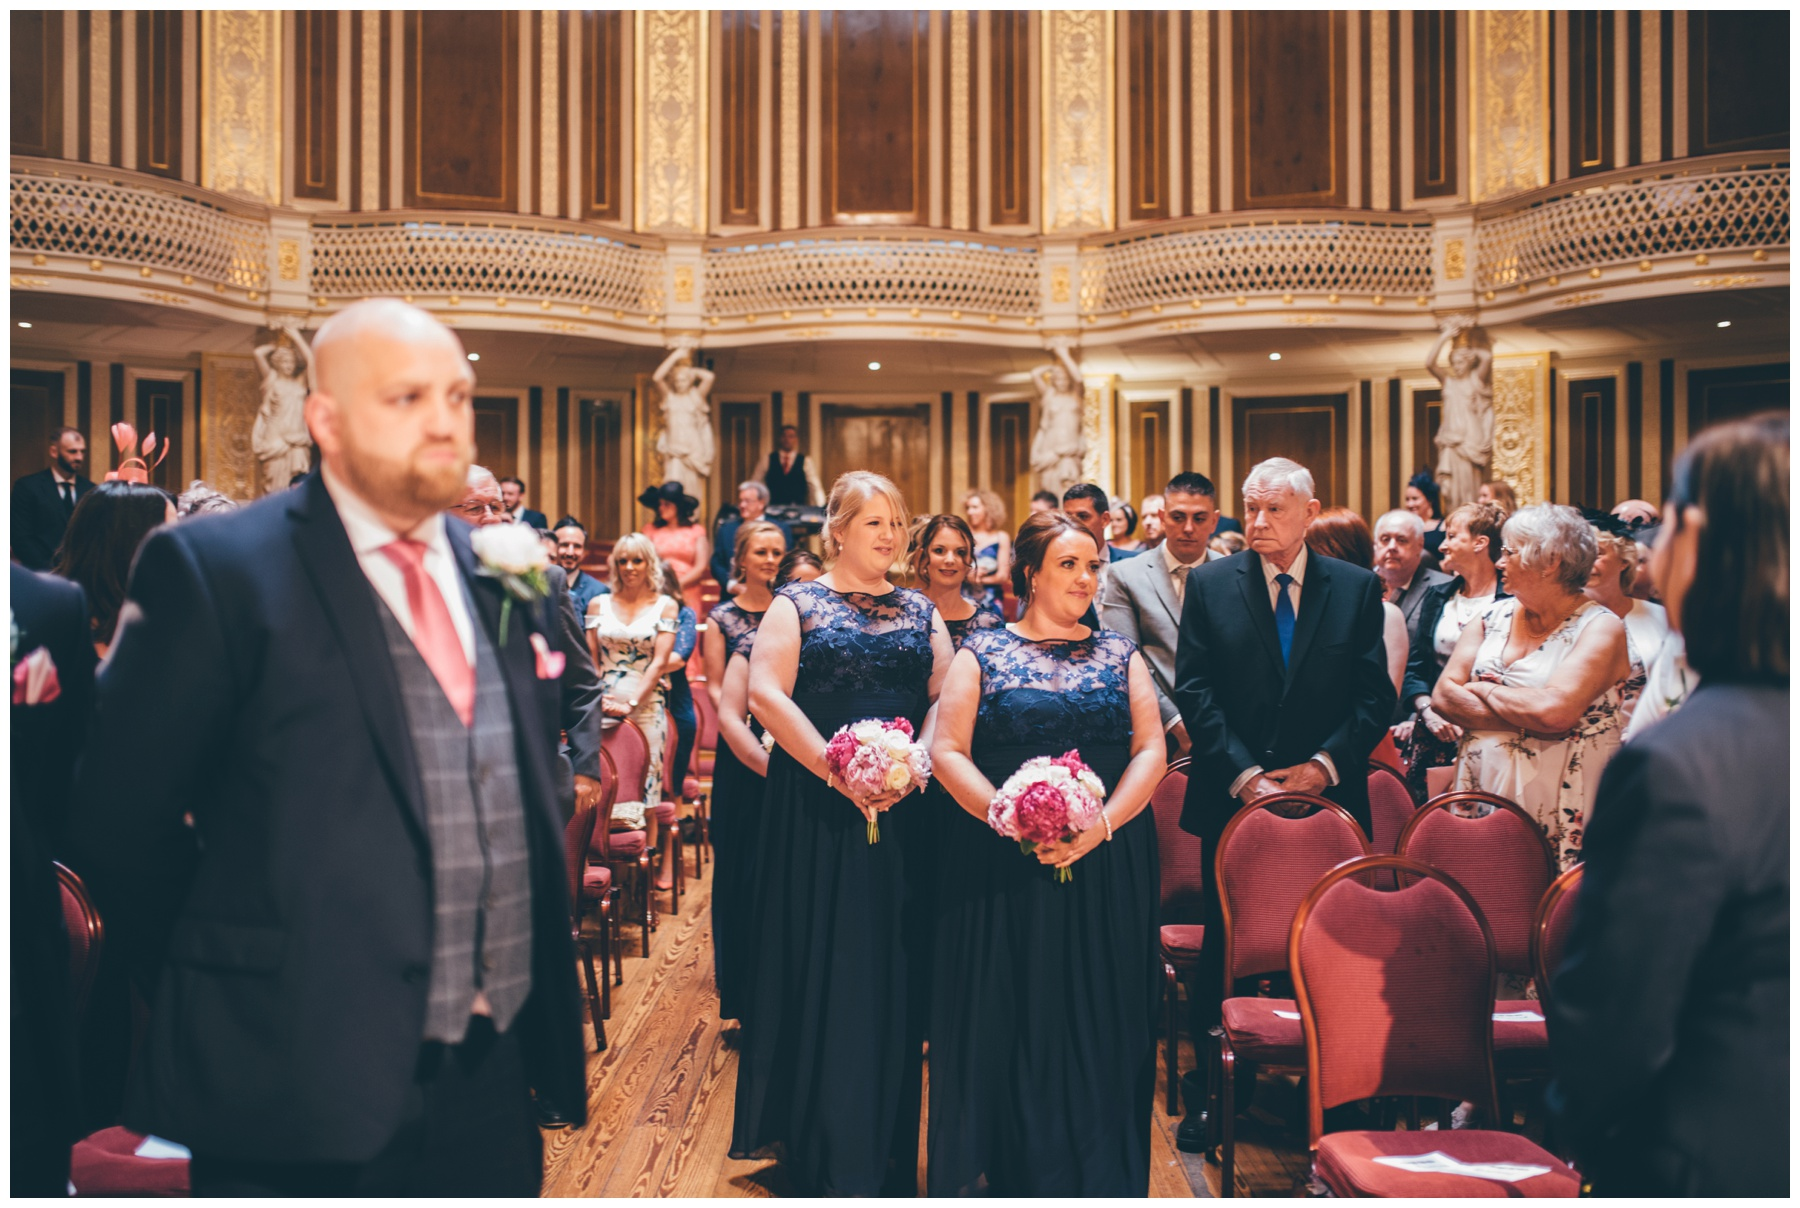 Bridesmaids walk down the aisle at St Georges Hall wedding in Liverpool City Centre.